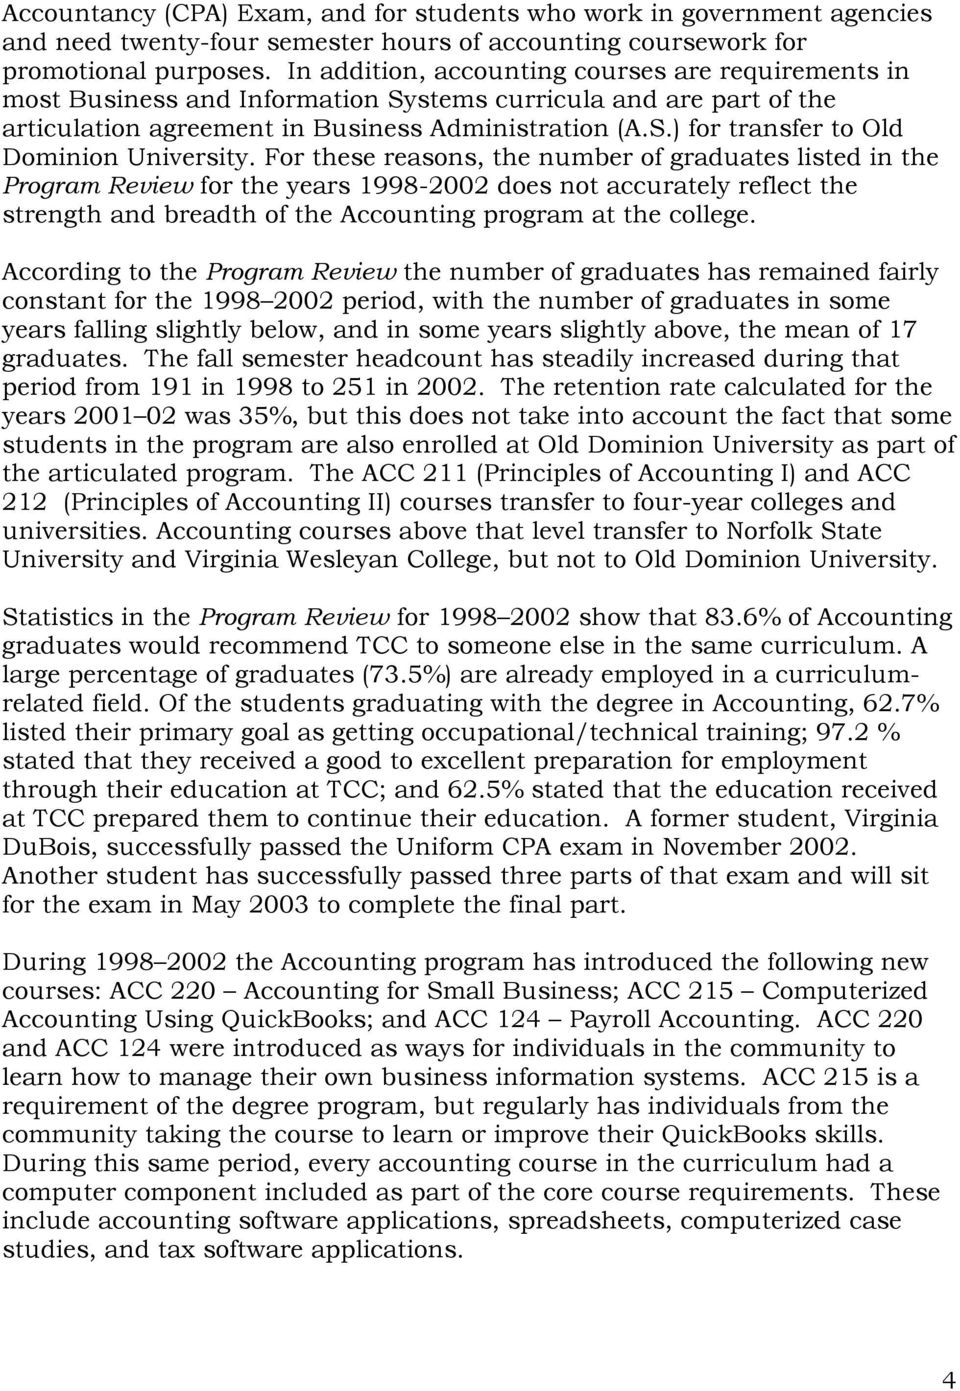 For these reasons, the number of graduates listed in the Program Review for the years 1998-2002 does not accurately reflect the strength and breadth of the Accounting program at the college.